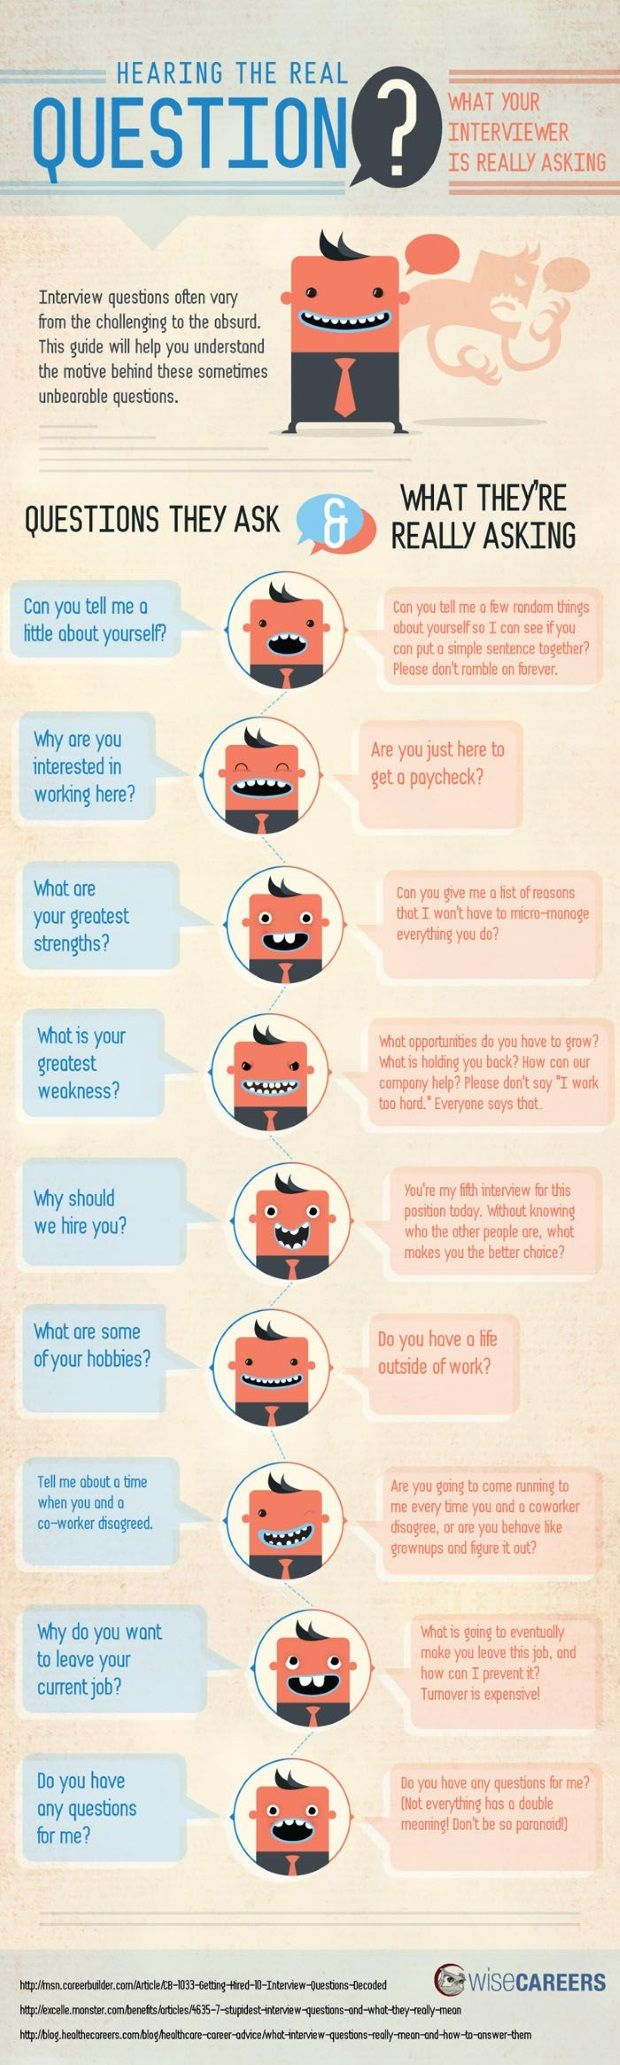 best ideas about networking interview questions tough job interview question here s what they are really asking infographic